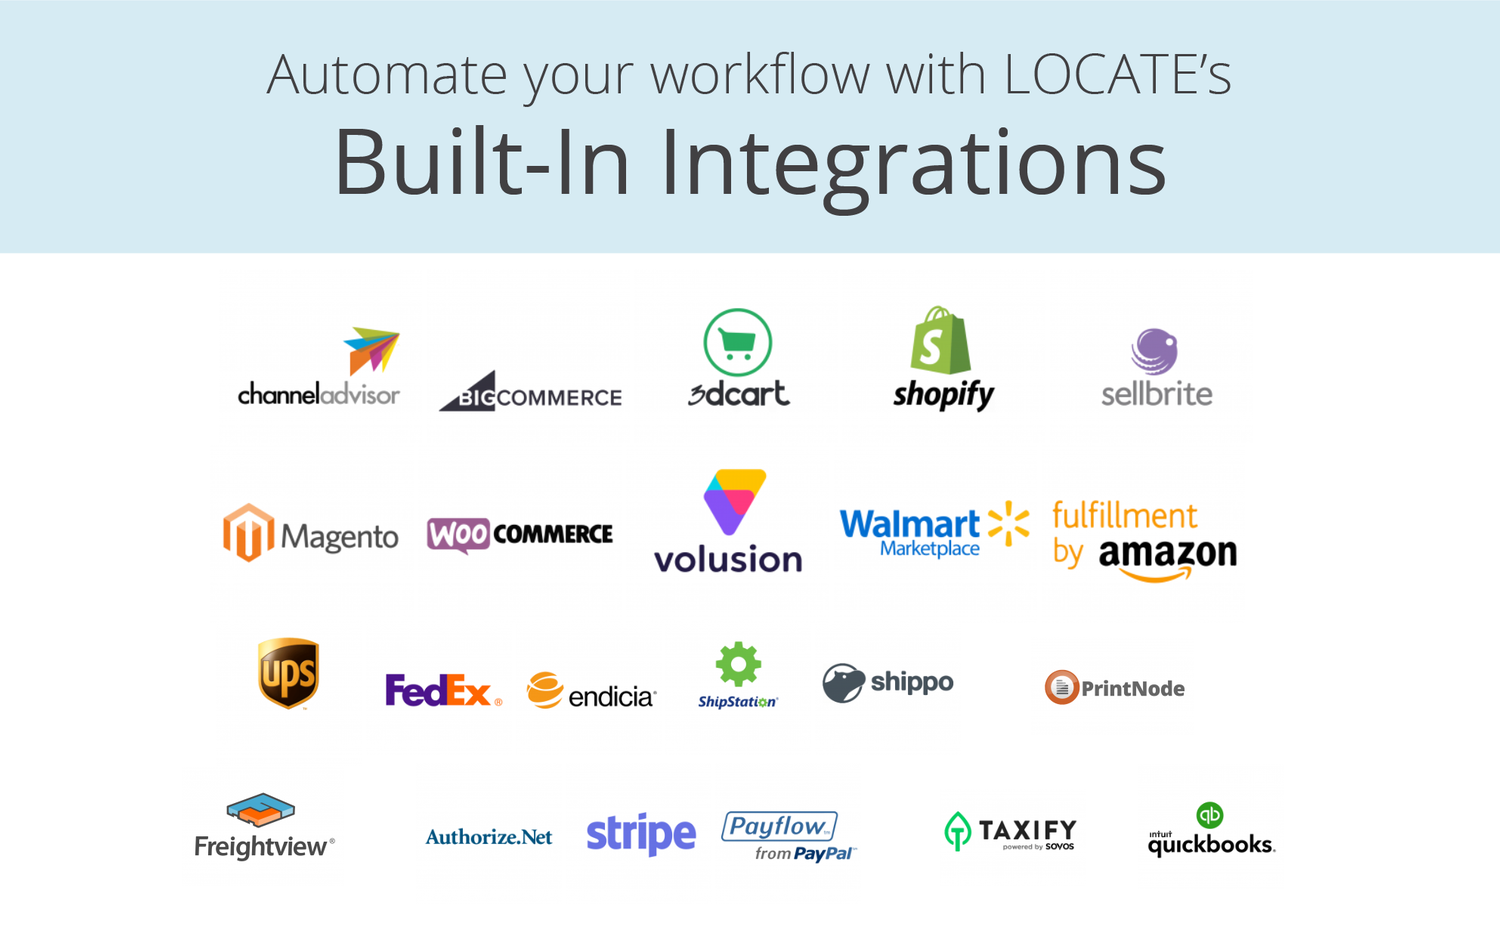 LOCATE Inventory by LOCATE Inventory | Apps for QuickBooks